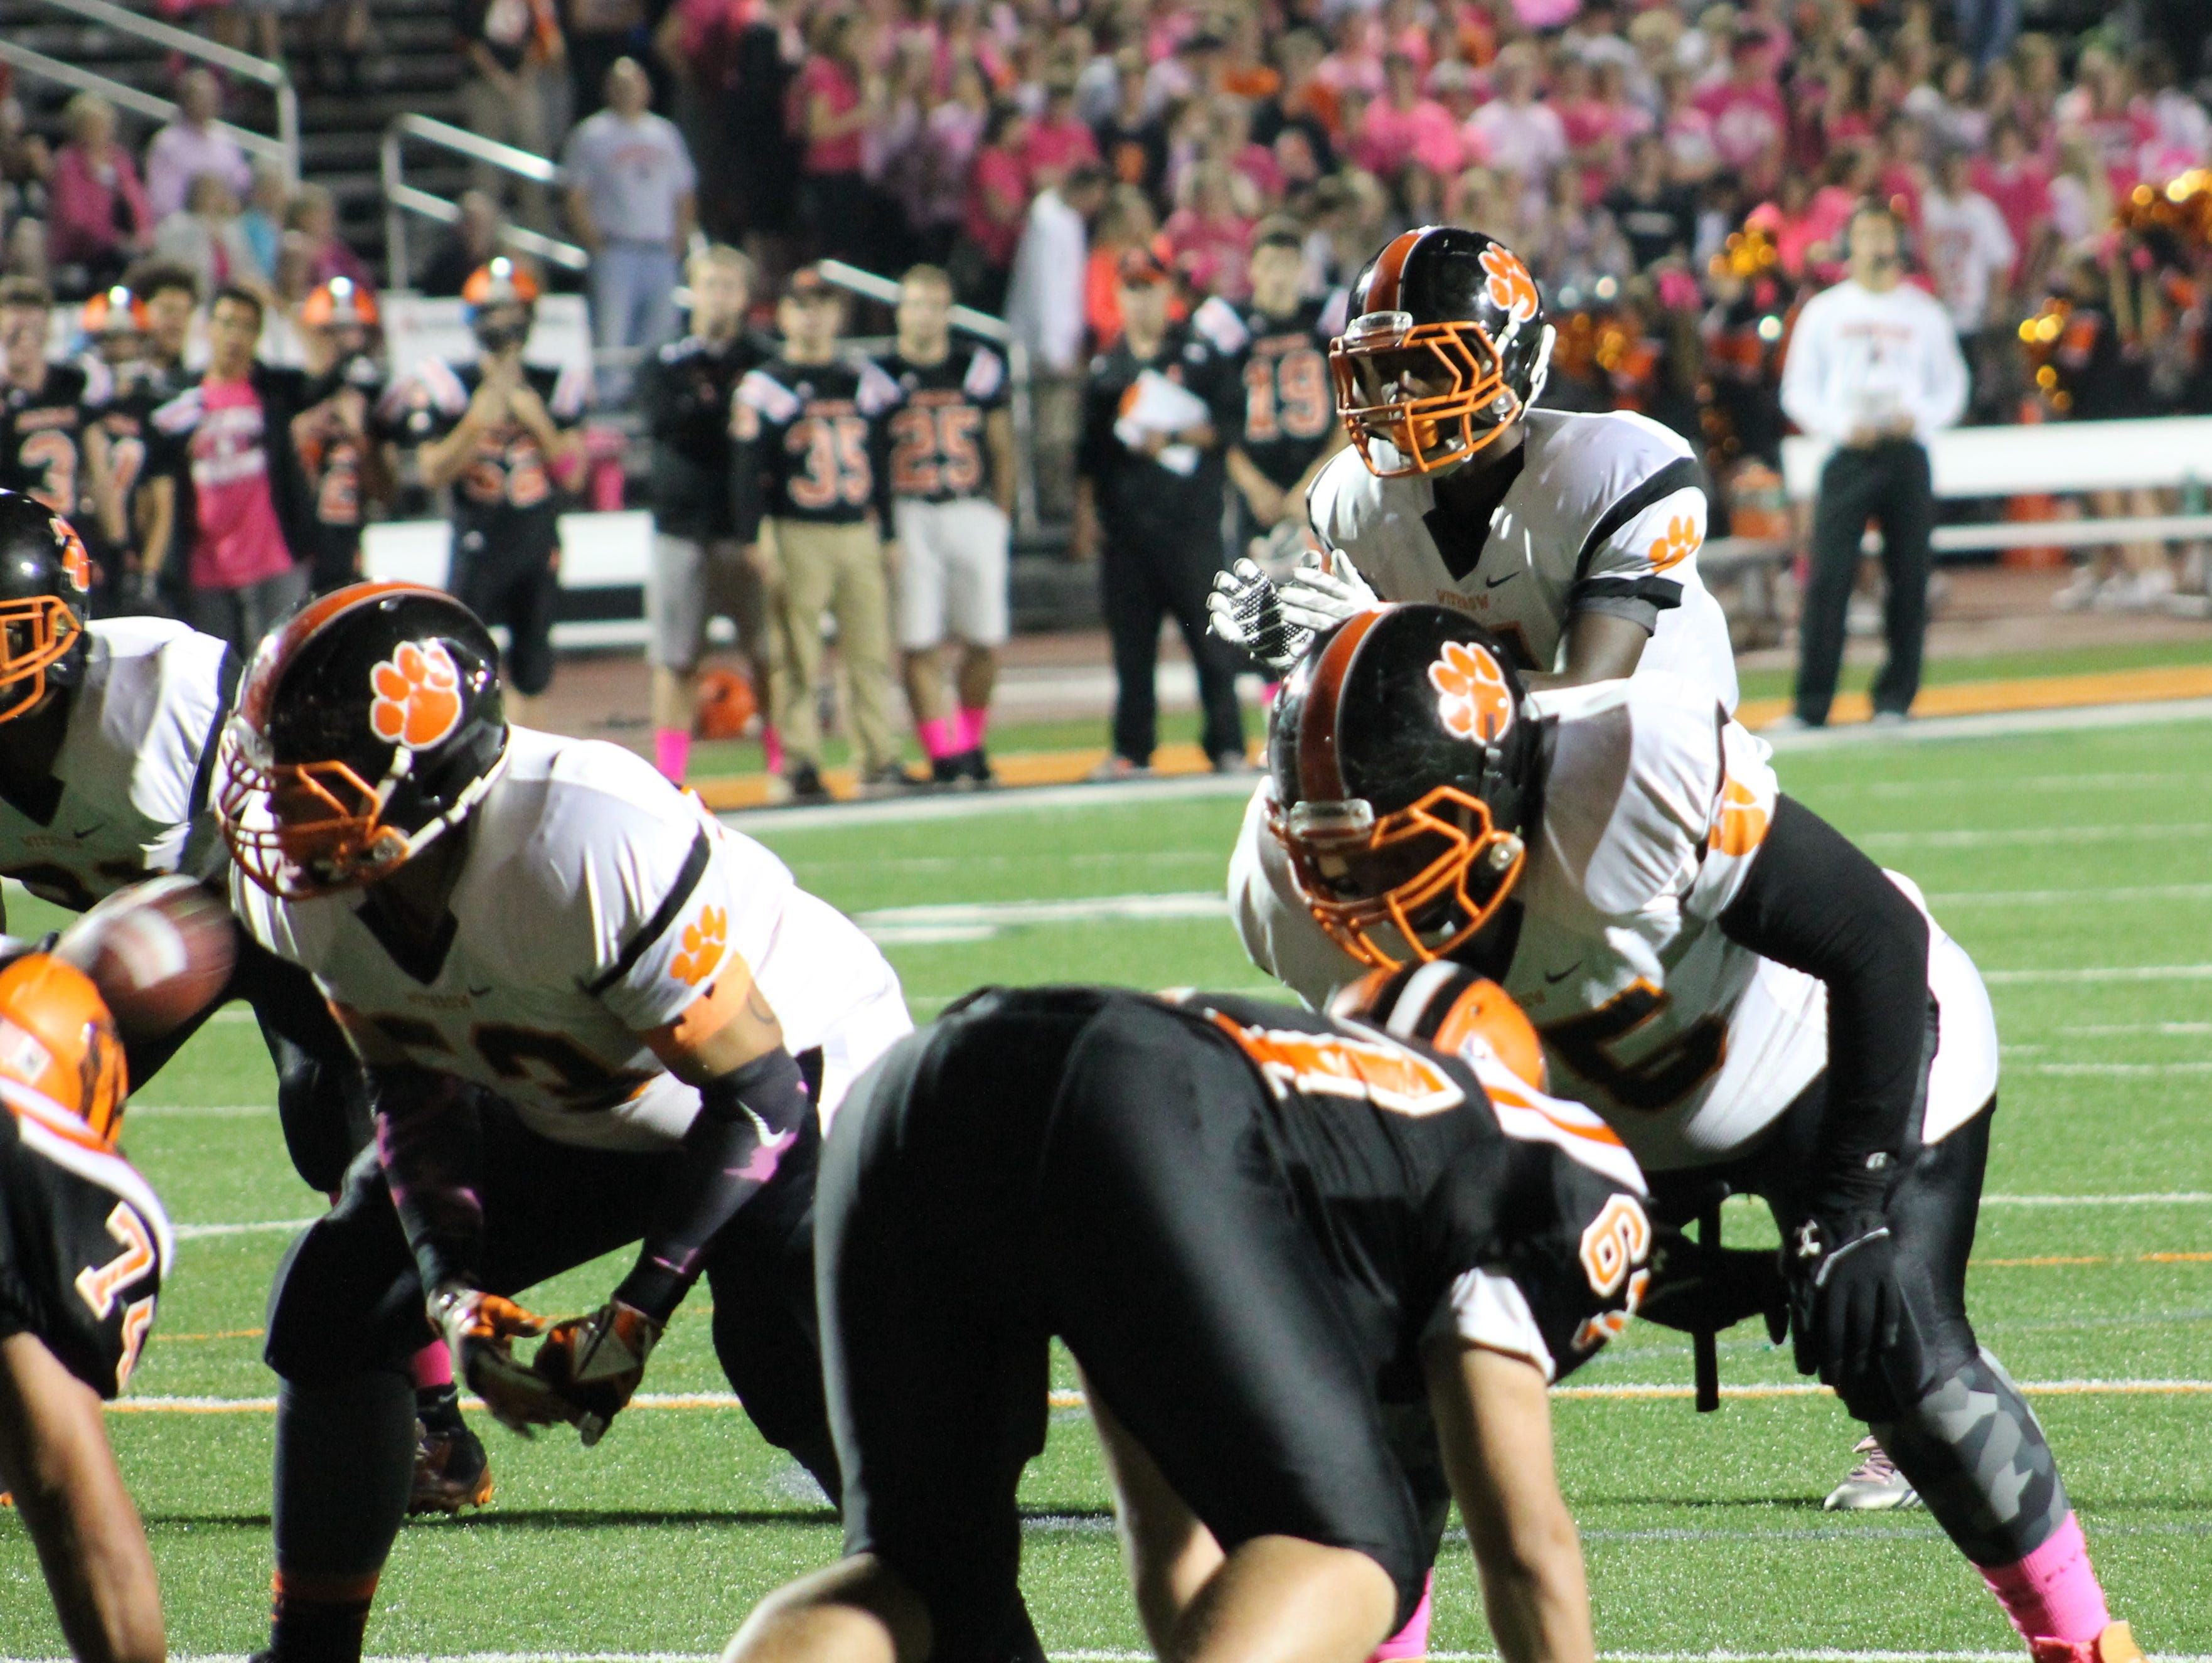 Withrow senior Rashaun O'Neal takes the direct snap for the Tigers against Anderson Oct. 23.